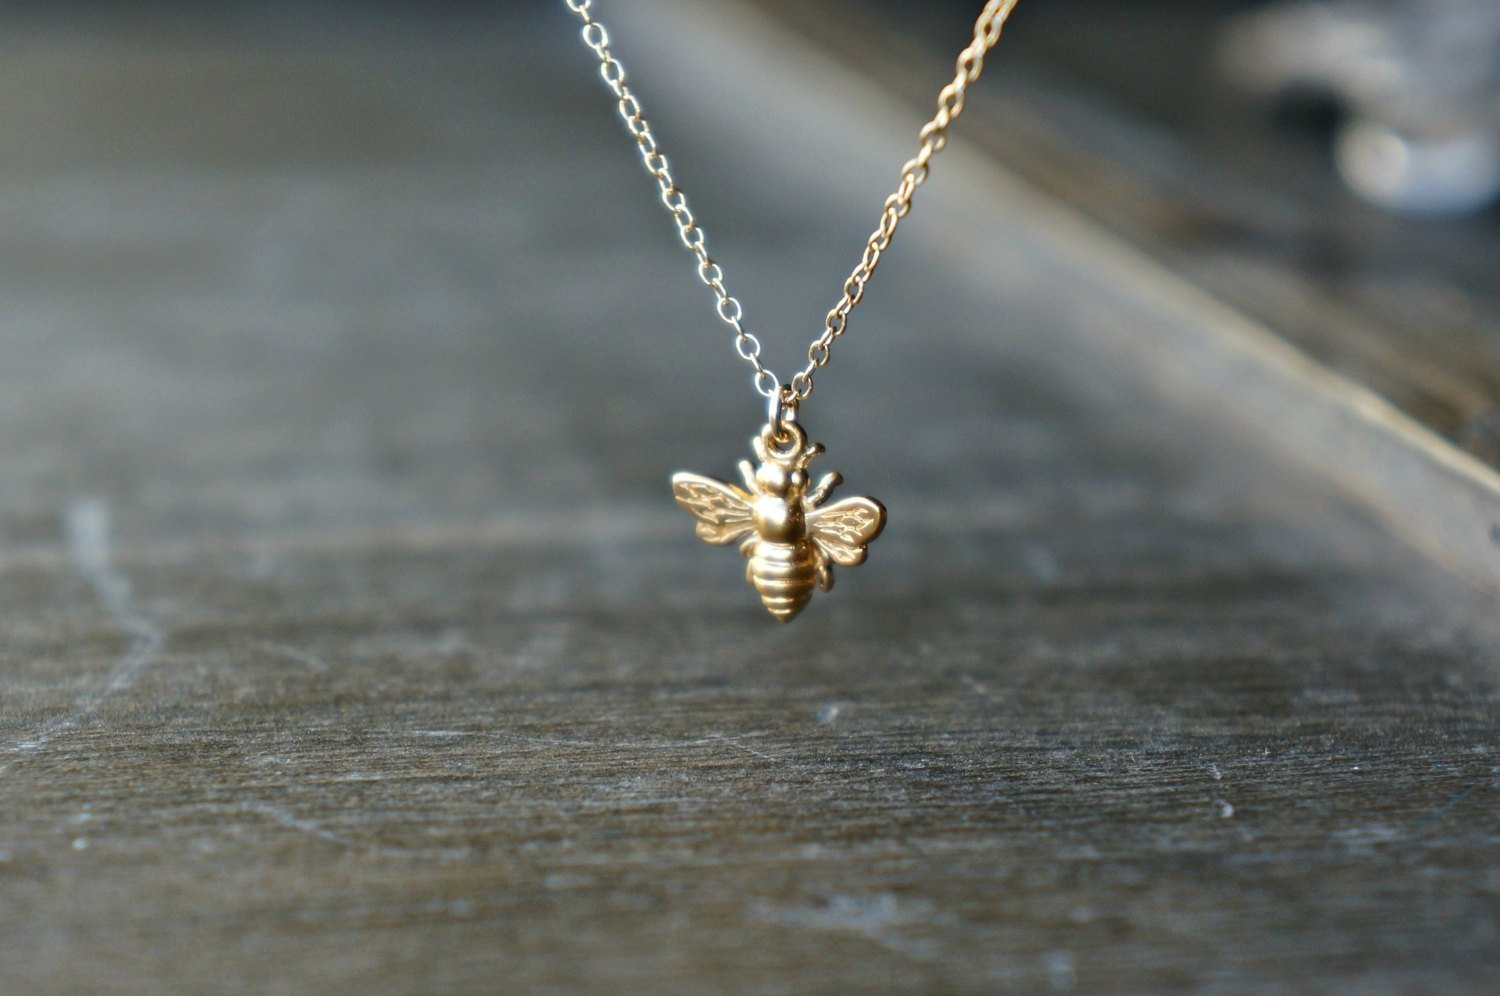 Little Gold Bee Necklace 24k Vermeil Honeybee/Bumblebee Charm Simple Everyday Jewelry Bridesmaid Gift Garden Themed Wedding Save the Bees